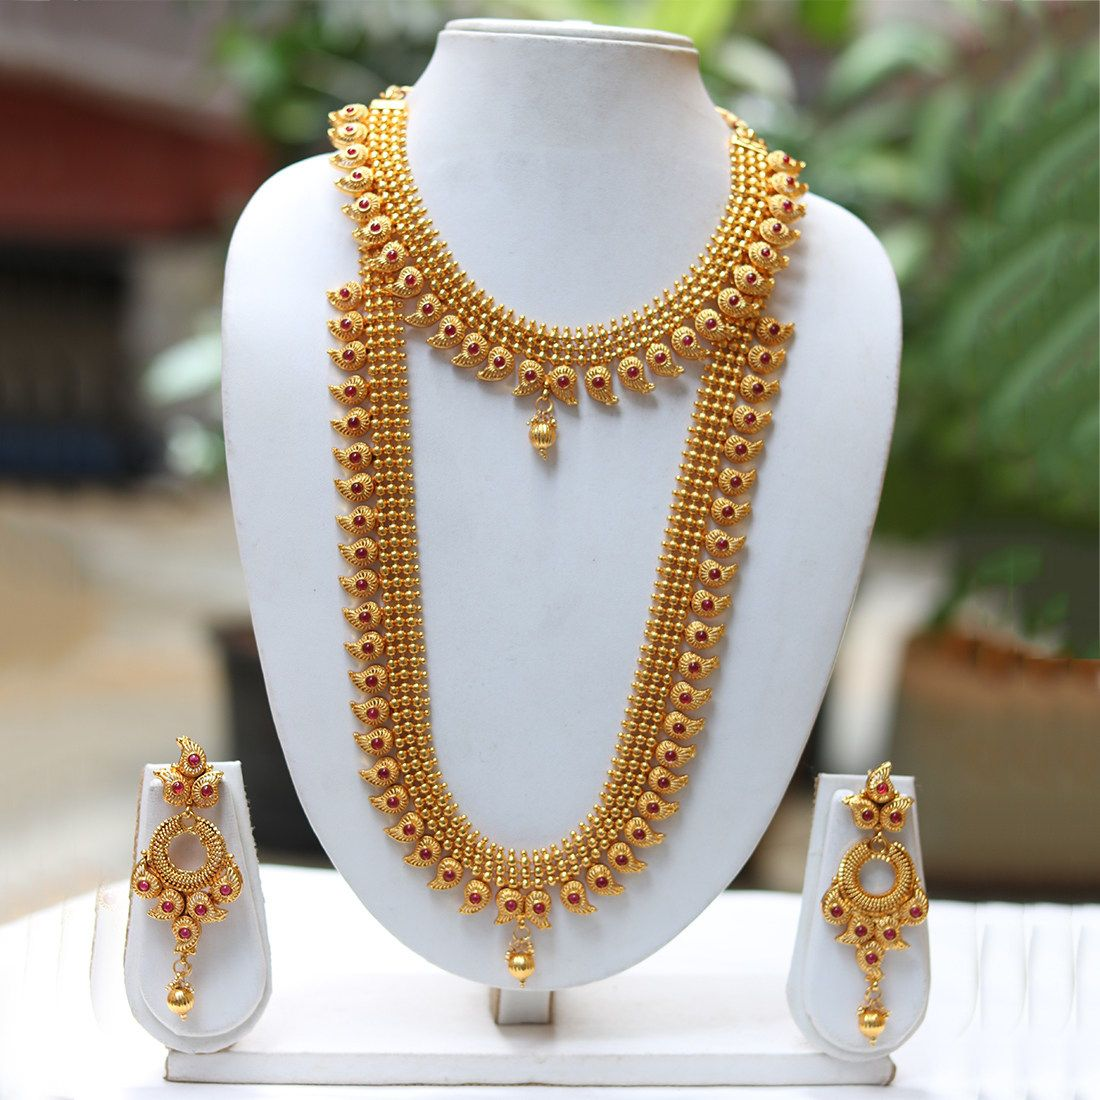 Buy Craftsvilla Latest Design Maroon Haram Necklace Set Online 100 Authentic Pro Gold Necklace Designs Gold Fashion Necklace Bridal Gold Jewellery Designs